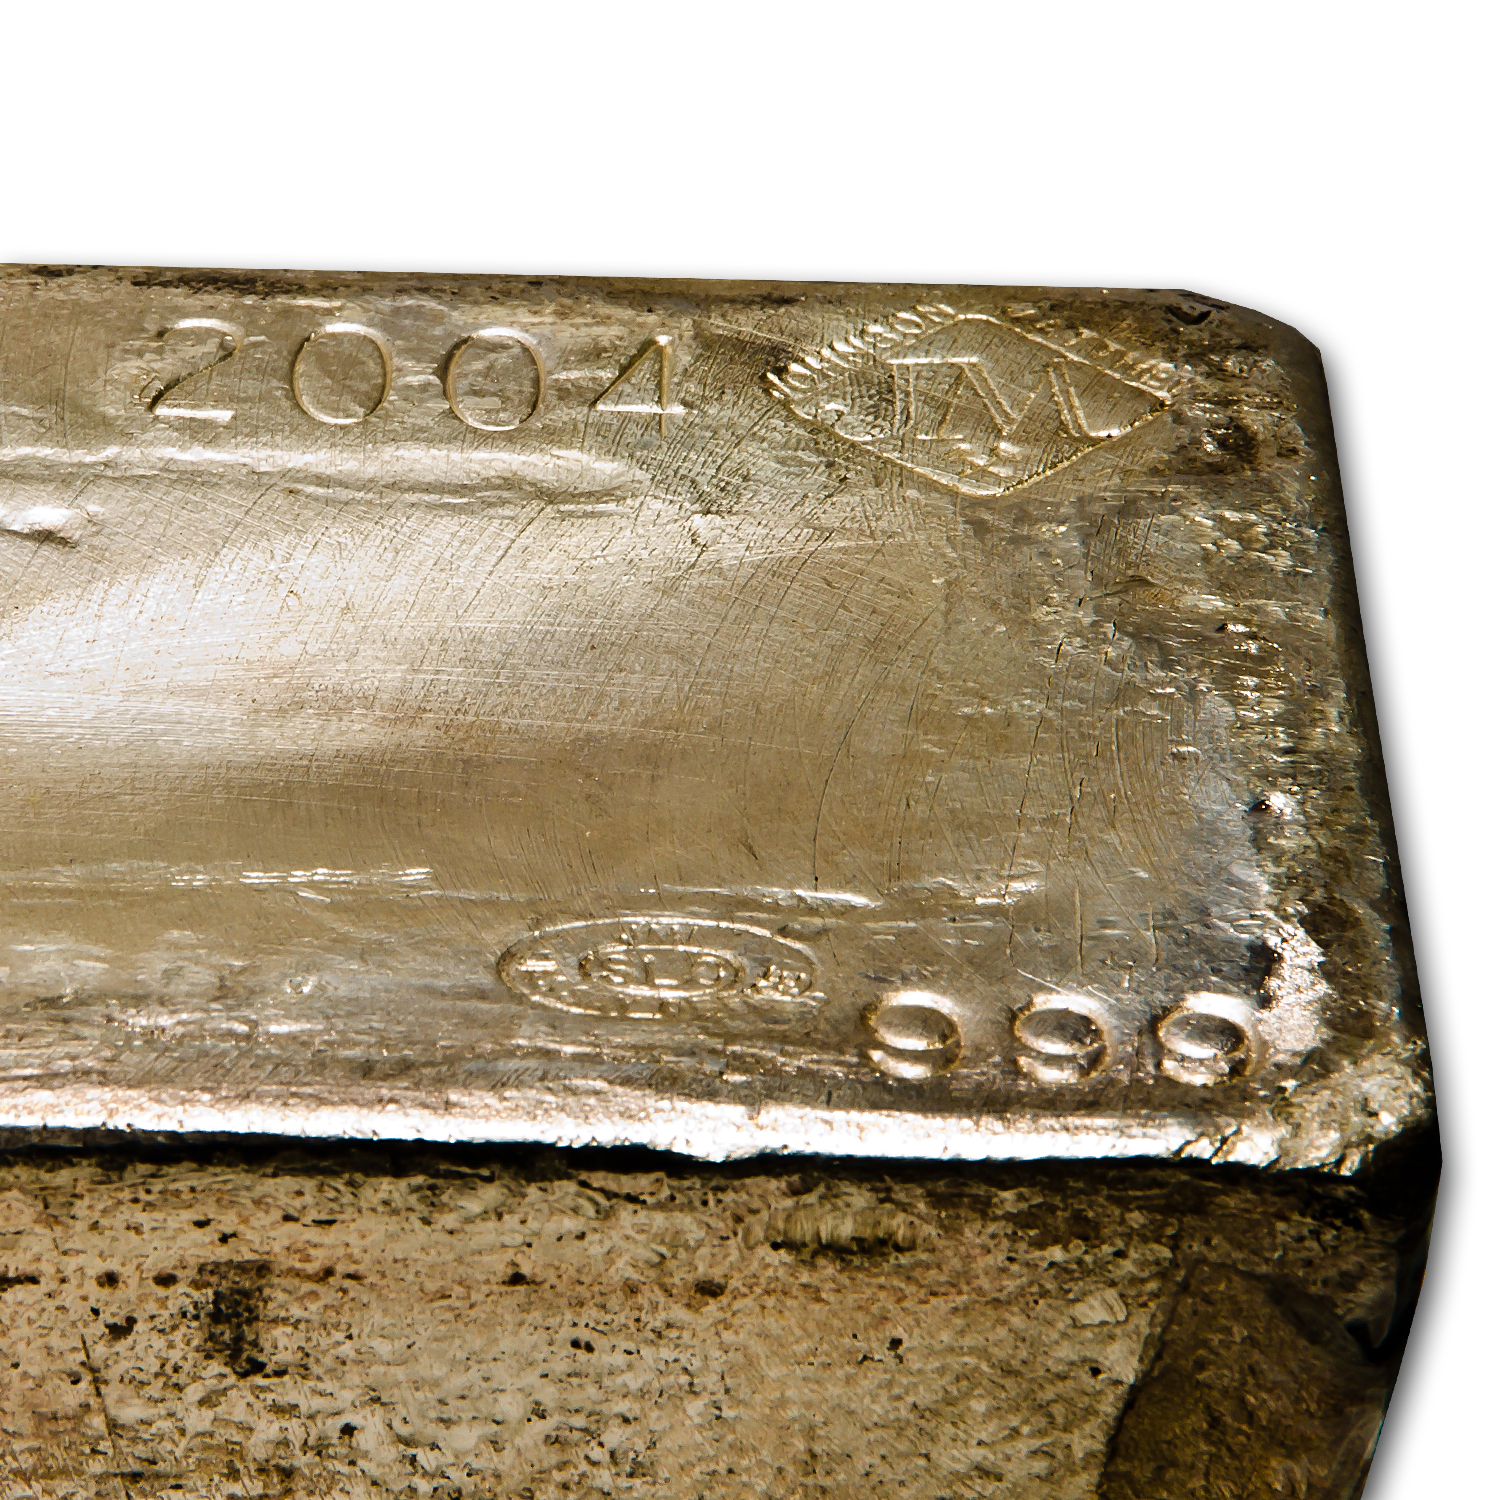 964.40 oz Silver Bar - Johnson Matthey